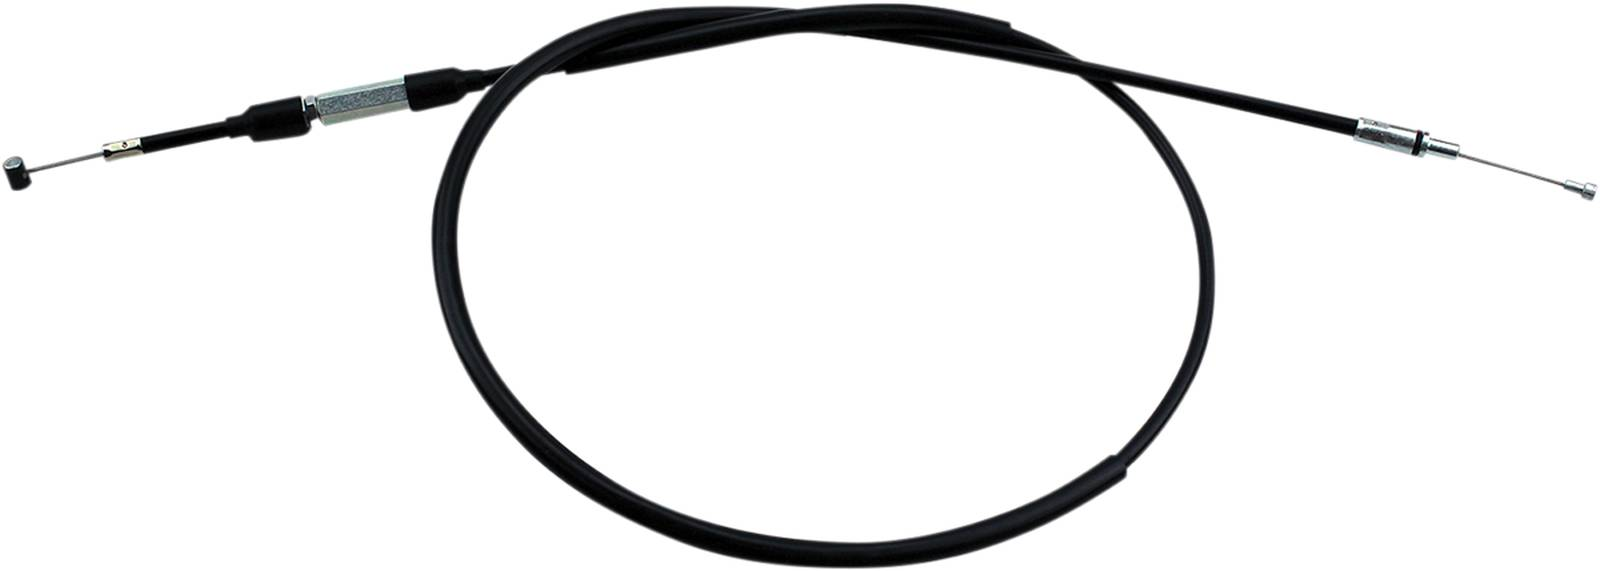 Buy New Moose Racing Control Cable;Clutch,Honda CRF150F